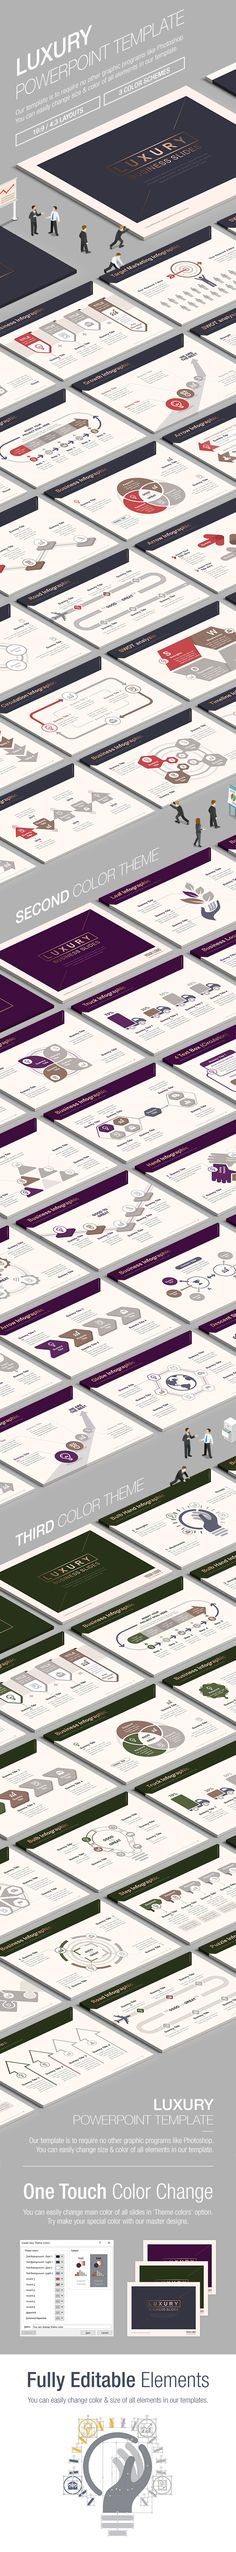 Business Luxury Powerpoint Template 002 (PowerPoint Templates)